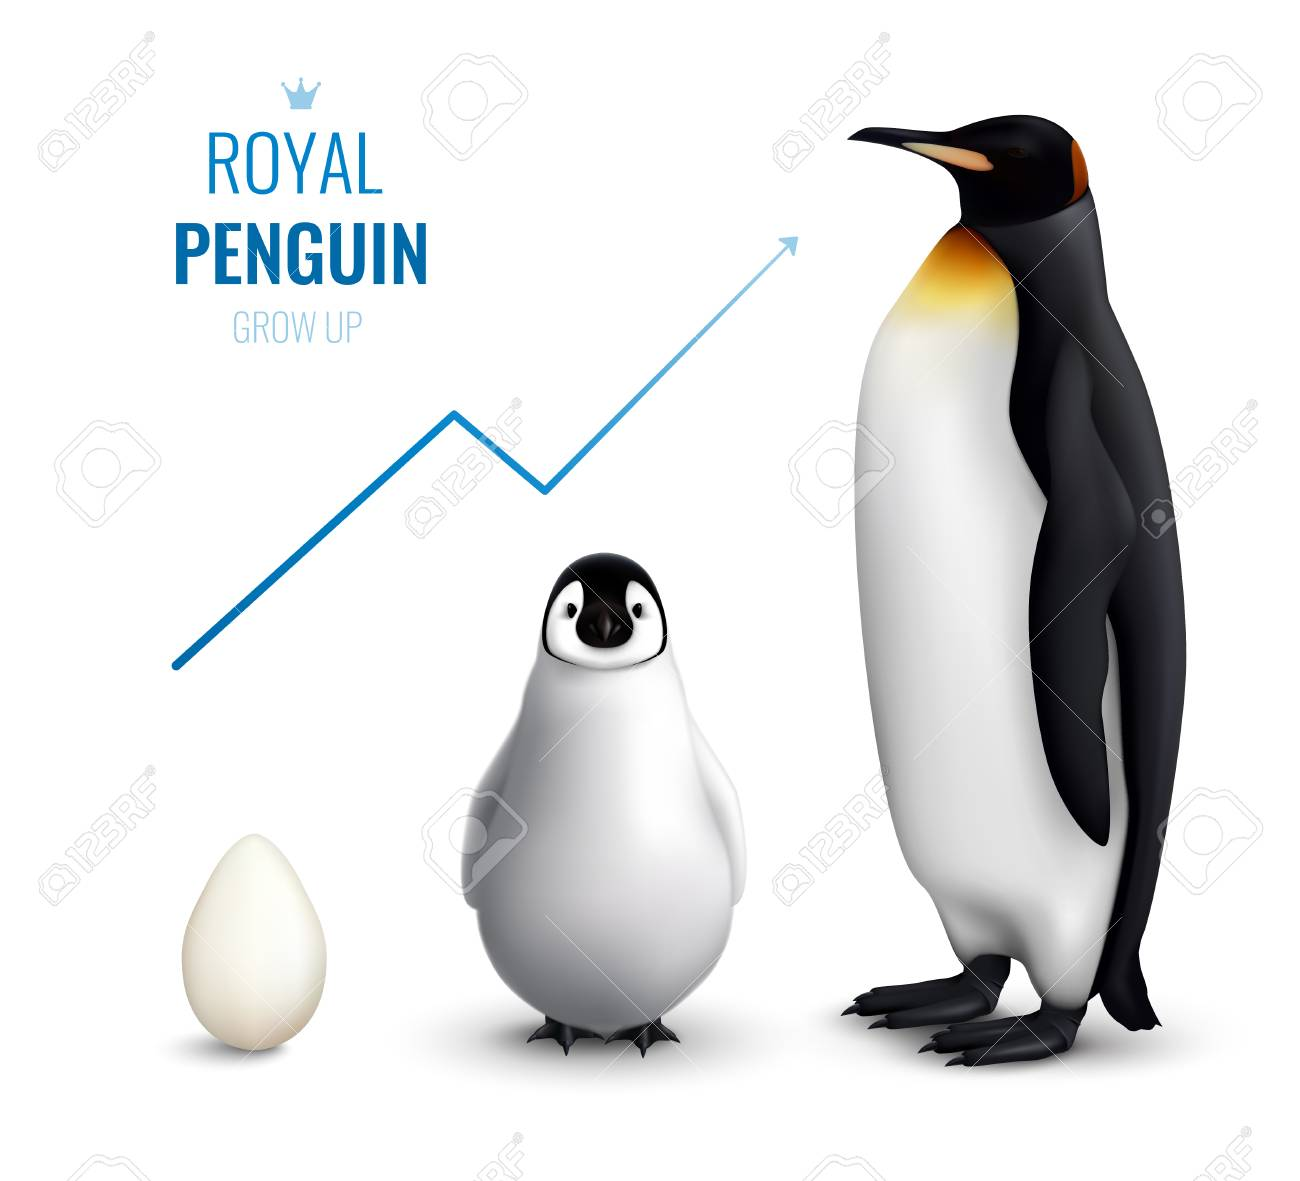 Royal penguins life cycle realistic poster with egg chick adult and indicating growth up arrow vector illustration - 112468295